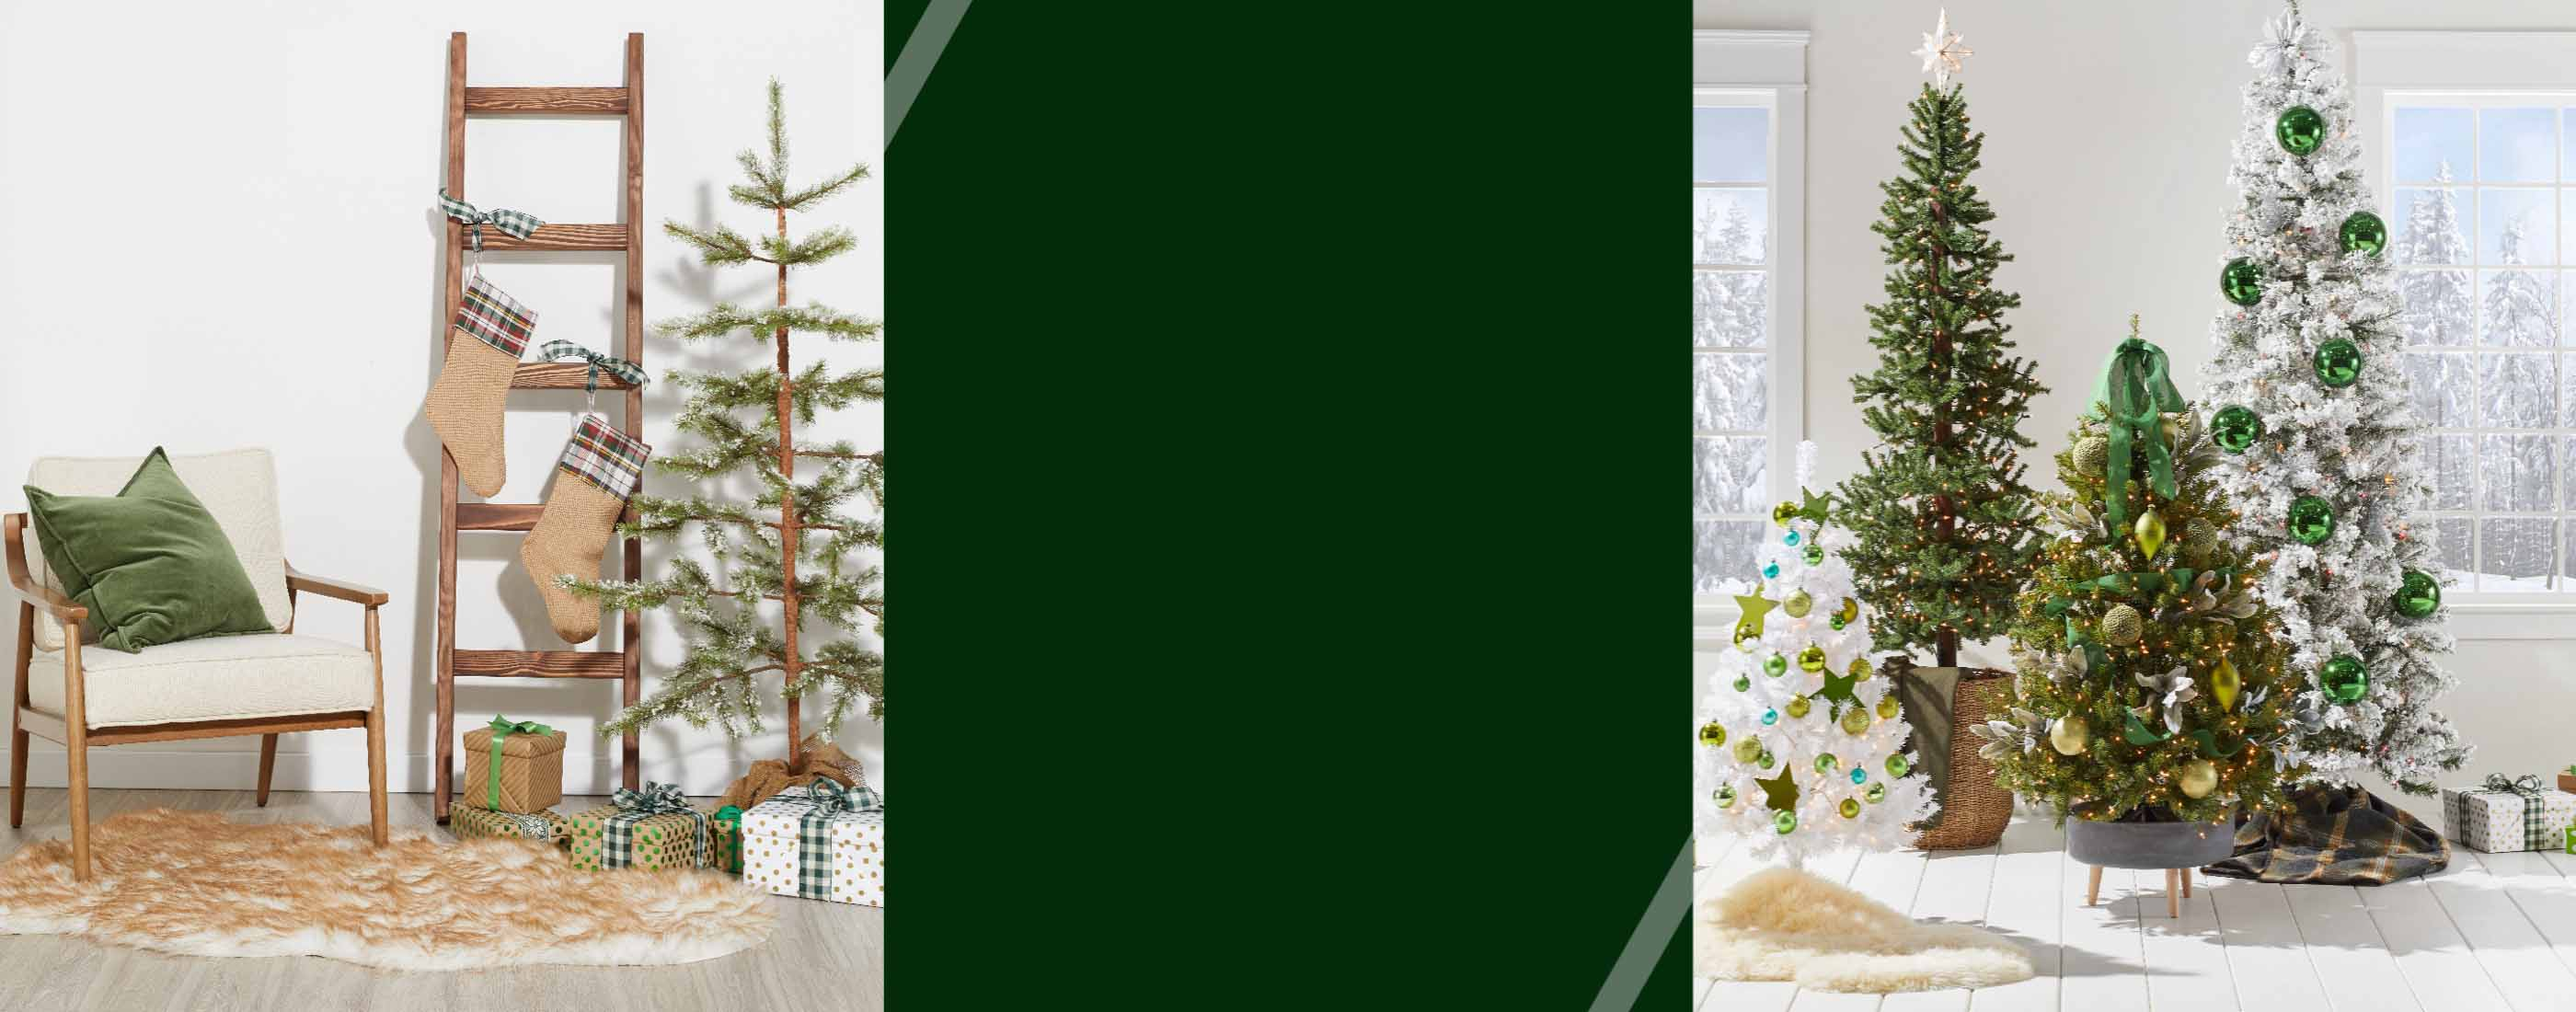 Holiday showcases with Christmas trees and a pair of stockings hanging from a ladder, selling fast online at Overstock